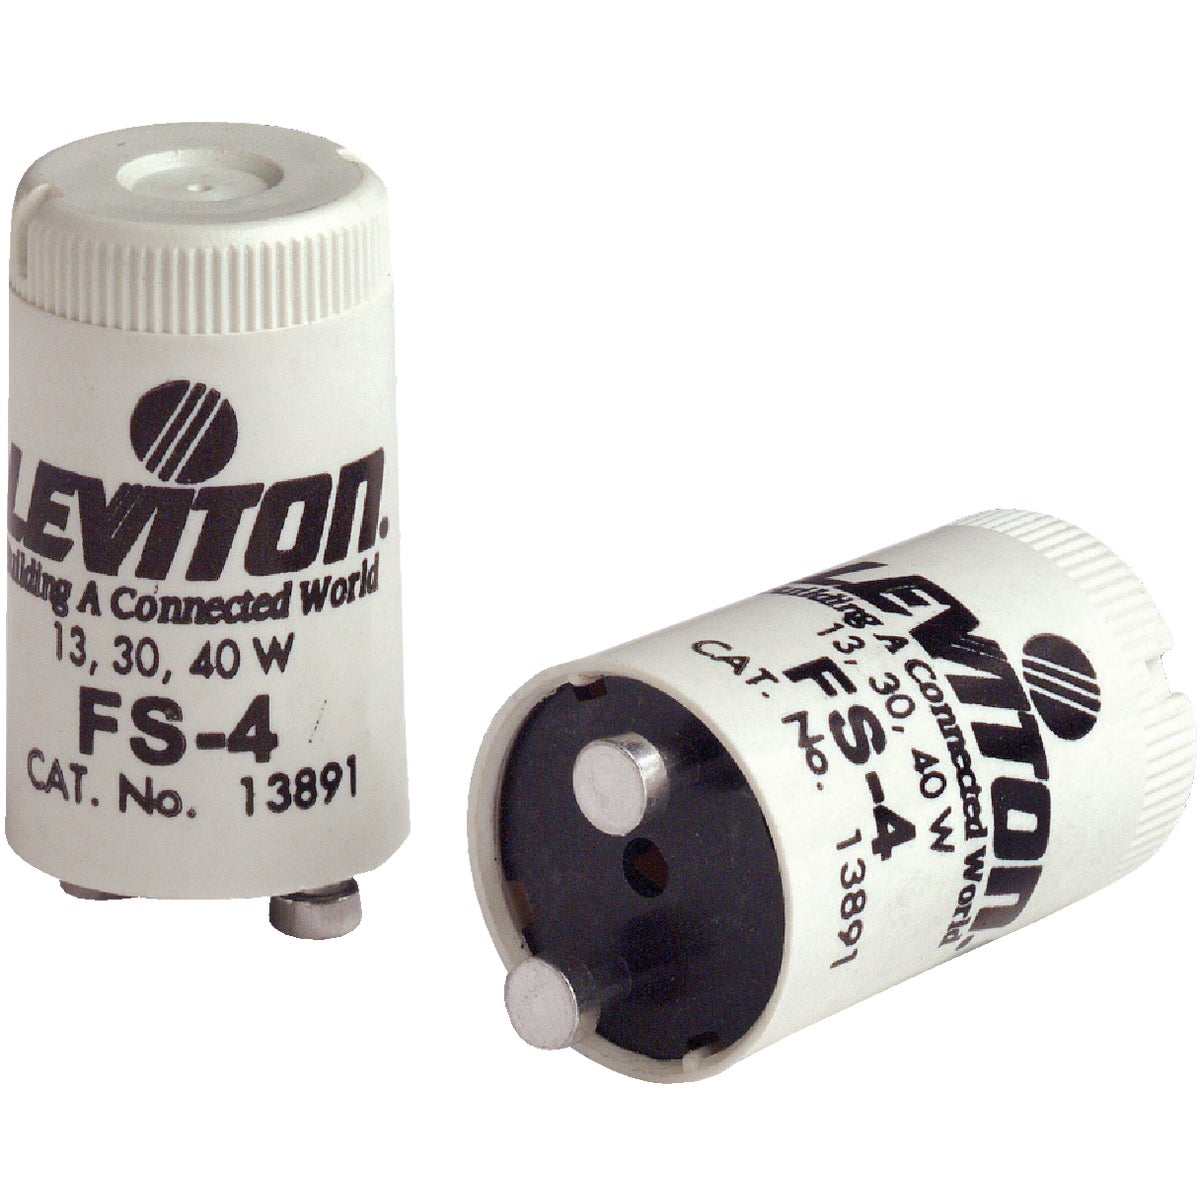 FLUOR STARTER - DB0-12410 by Leviton Mfg Co